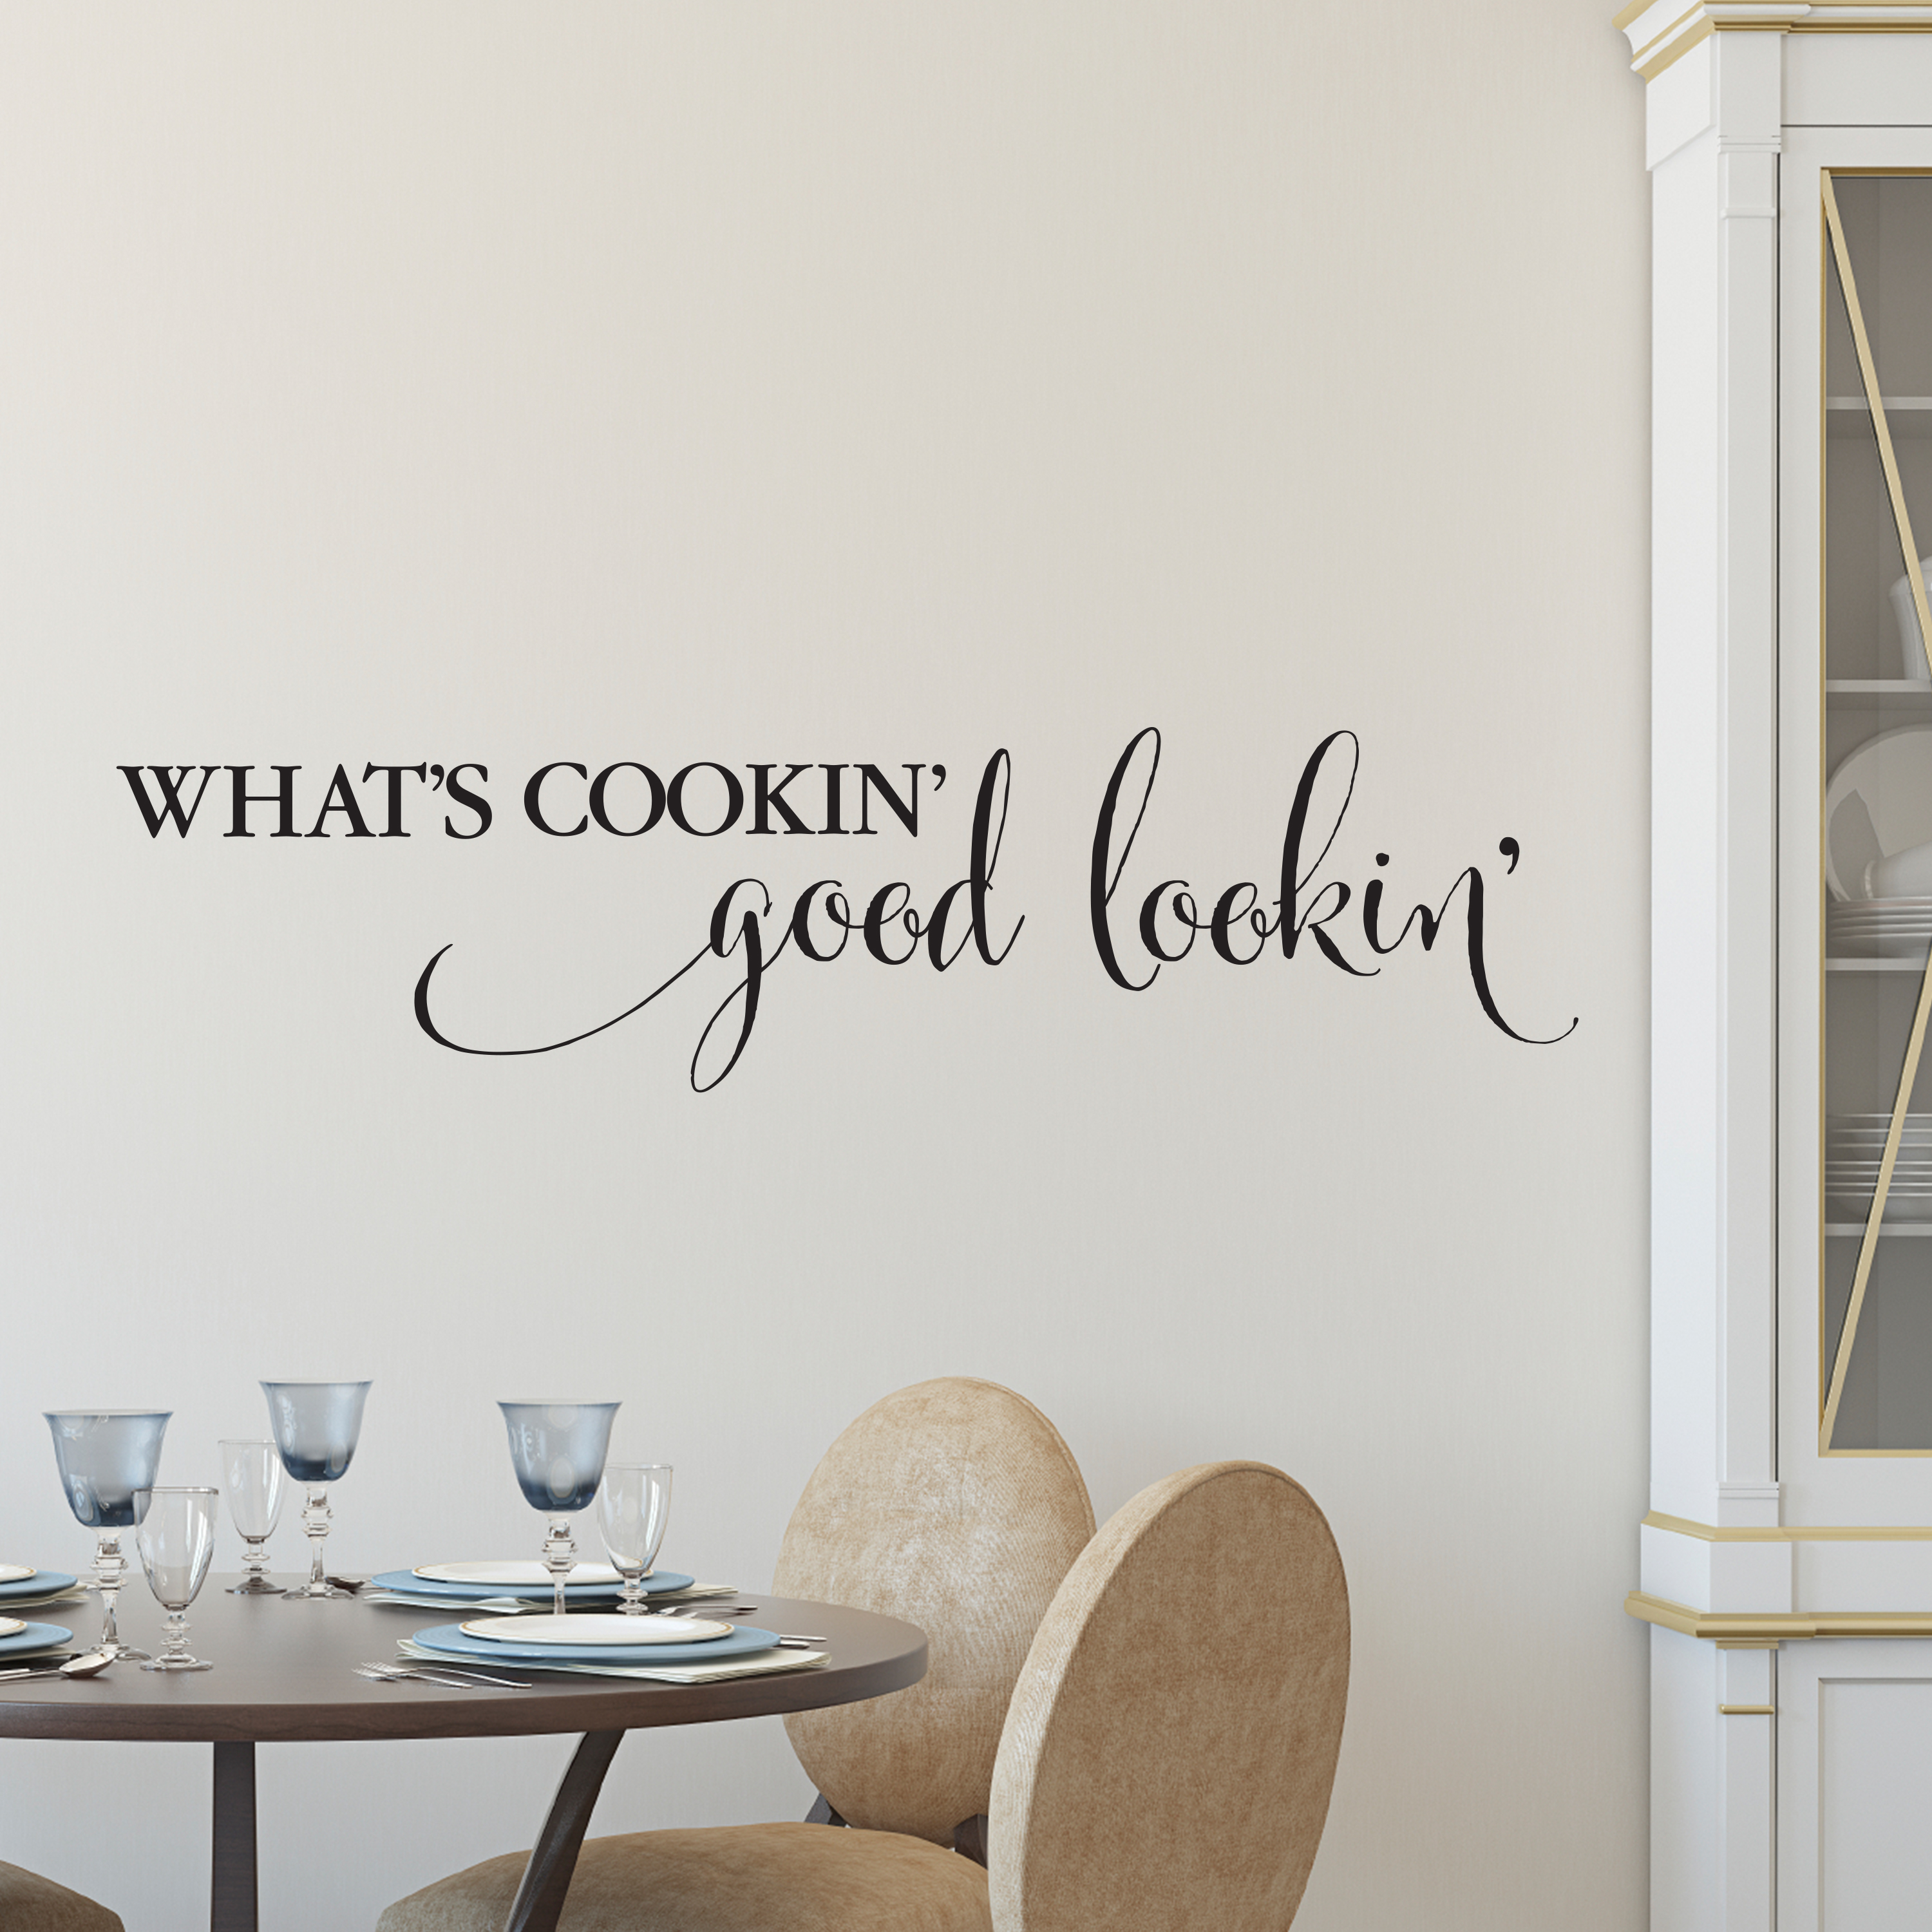 What S Cookin Good Lookin Vinyl Wall Decal By Wild Eyes Signs Kitchen Lettering Dining Room Art Entry Way Funny Kitchen Nook Saying Hh2067